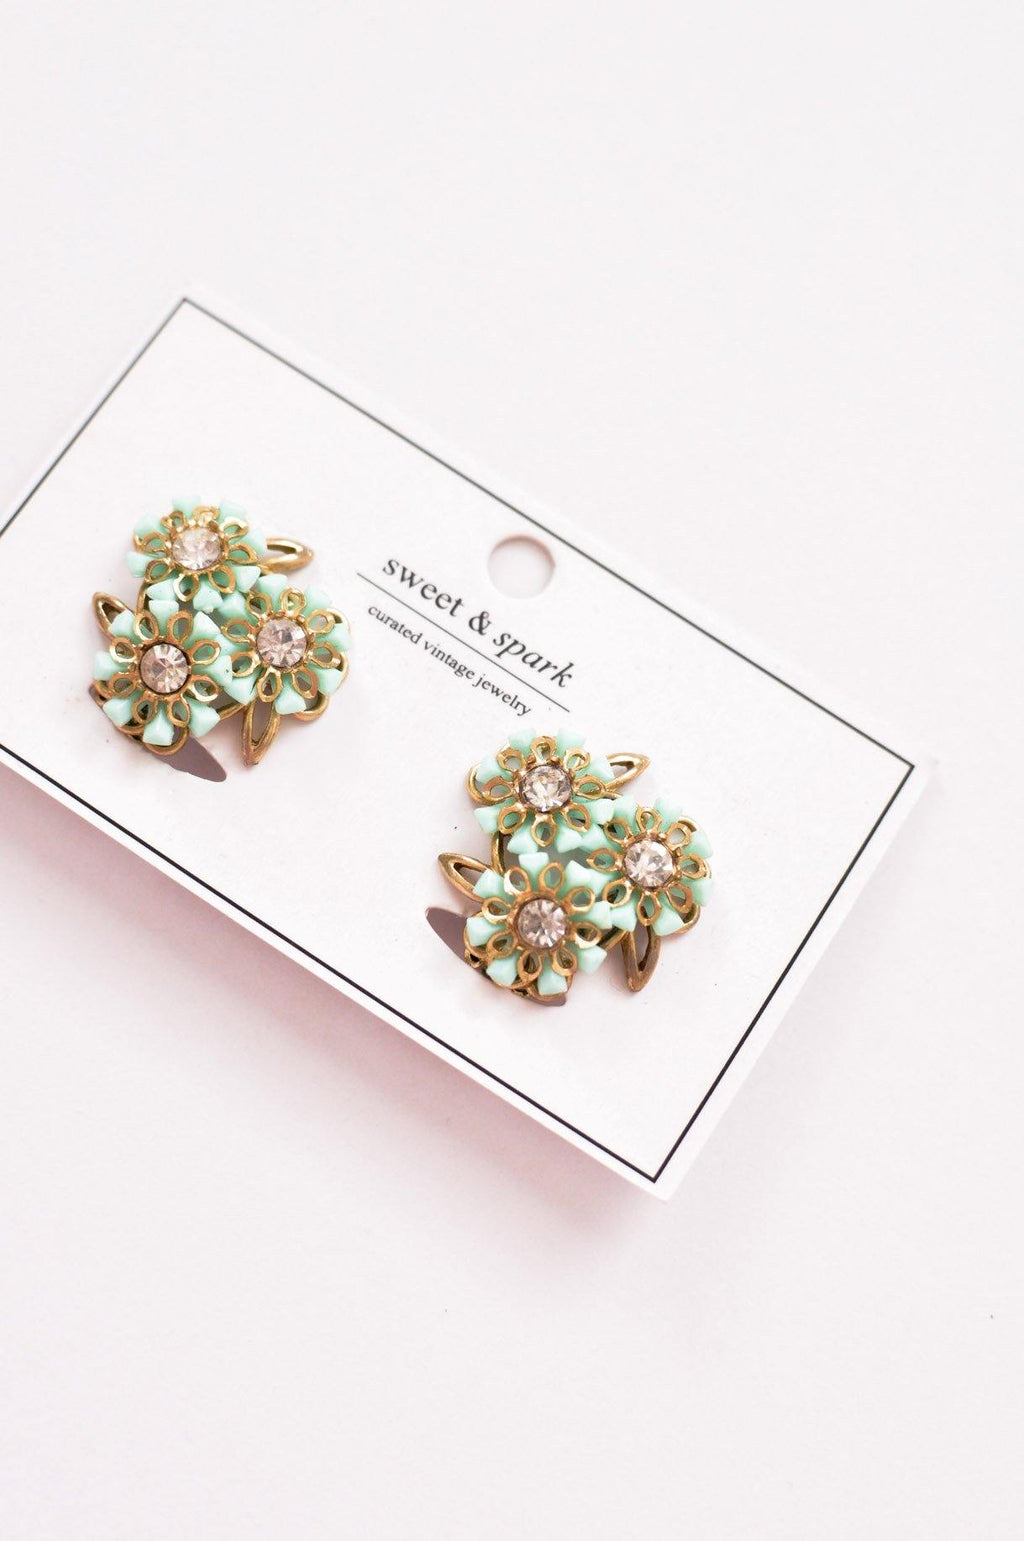 Green Floral Clip-on Earrings